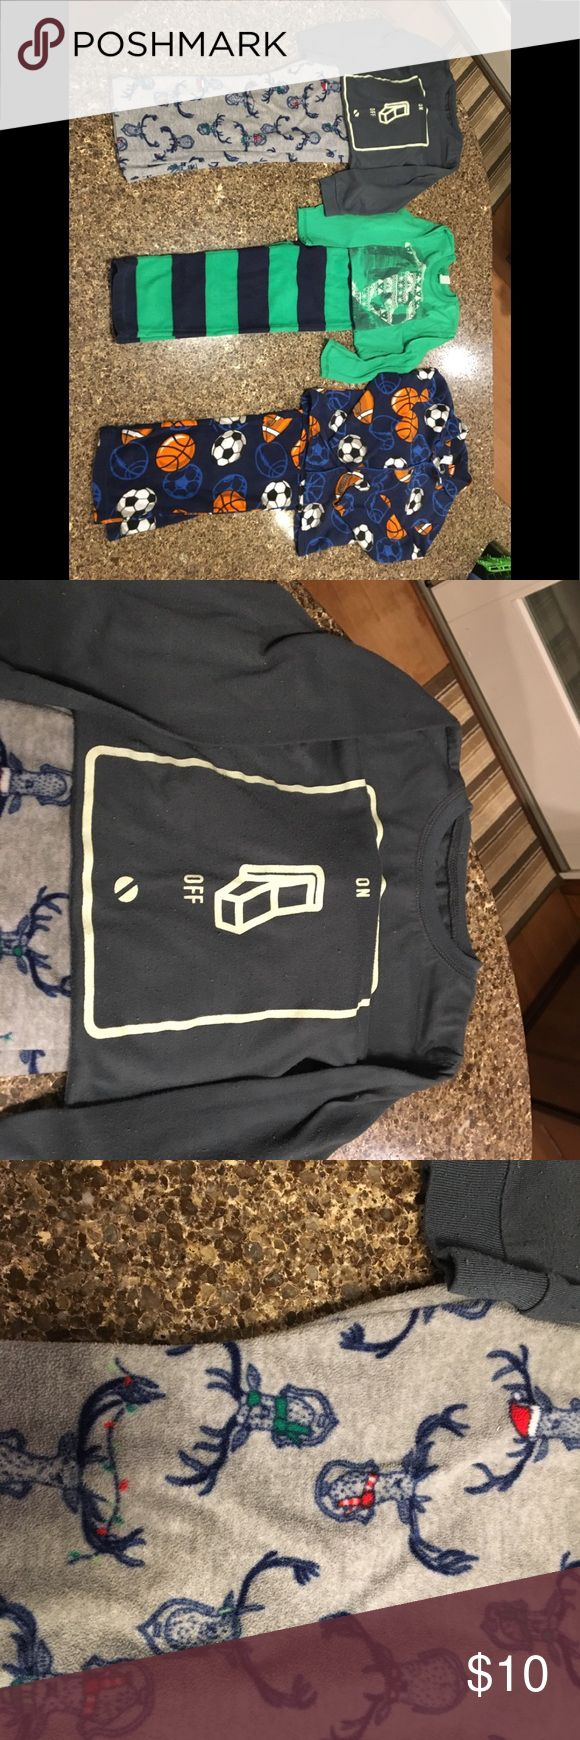 Boys size 6-7 pajama lot! Two GAP, one off brand Boys size 6-7 pajama lot! Two GAP, one off brand!  My guy just grows too quick!   1) Grey on/off switch top with deer fleece bottoms. Top GAP. Bottom GAP Factory. Shirt has piling as typical with this type of fabrication. No stains. EUC otherwise.   2) Green/Blue GAP Factory snowboarder set. Bottoms fleece. Shirt has piling as typical with this type of fabrication. No stains. EUC otherwise.   3) Blue sports set. Jelli Fish kids brand (bought…